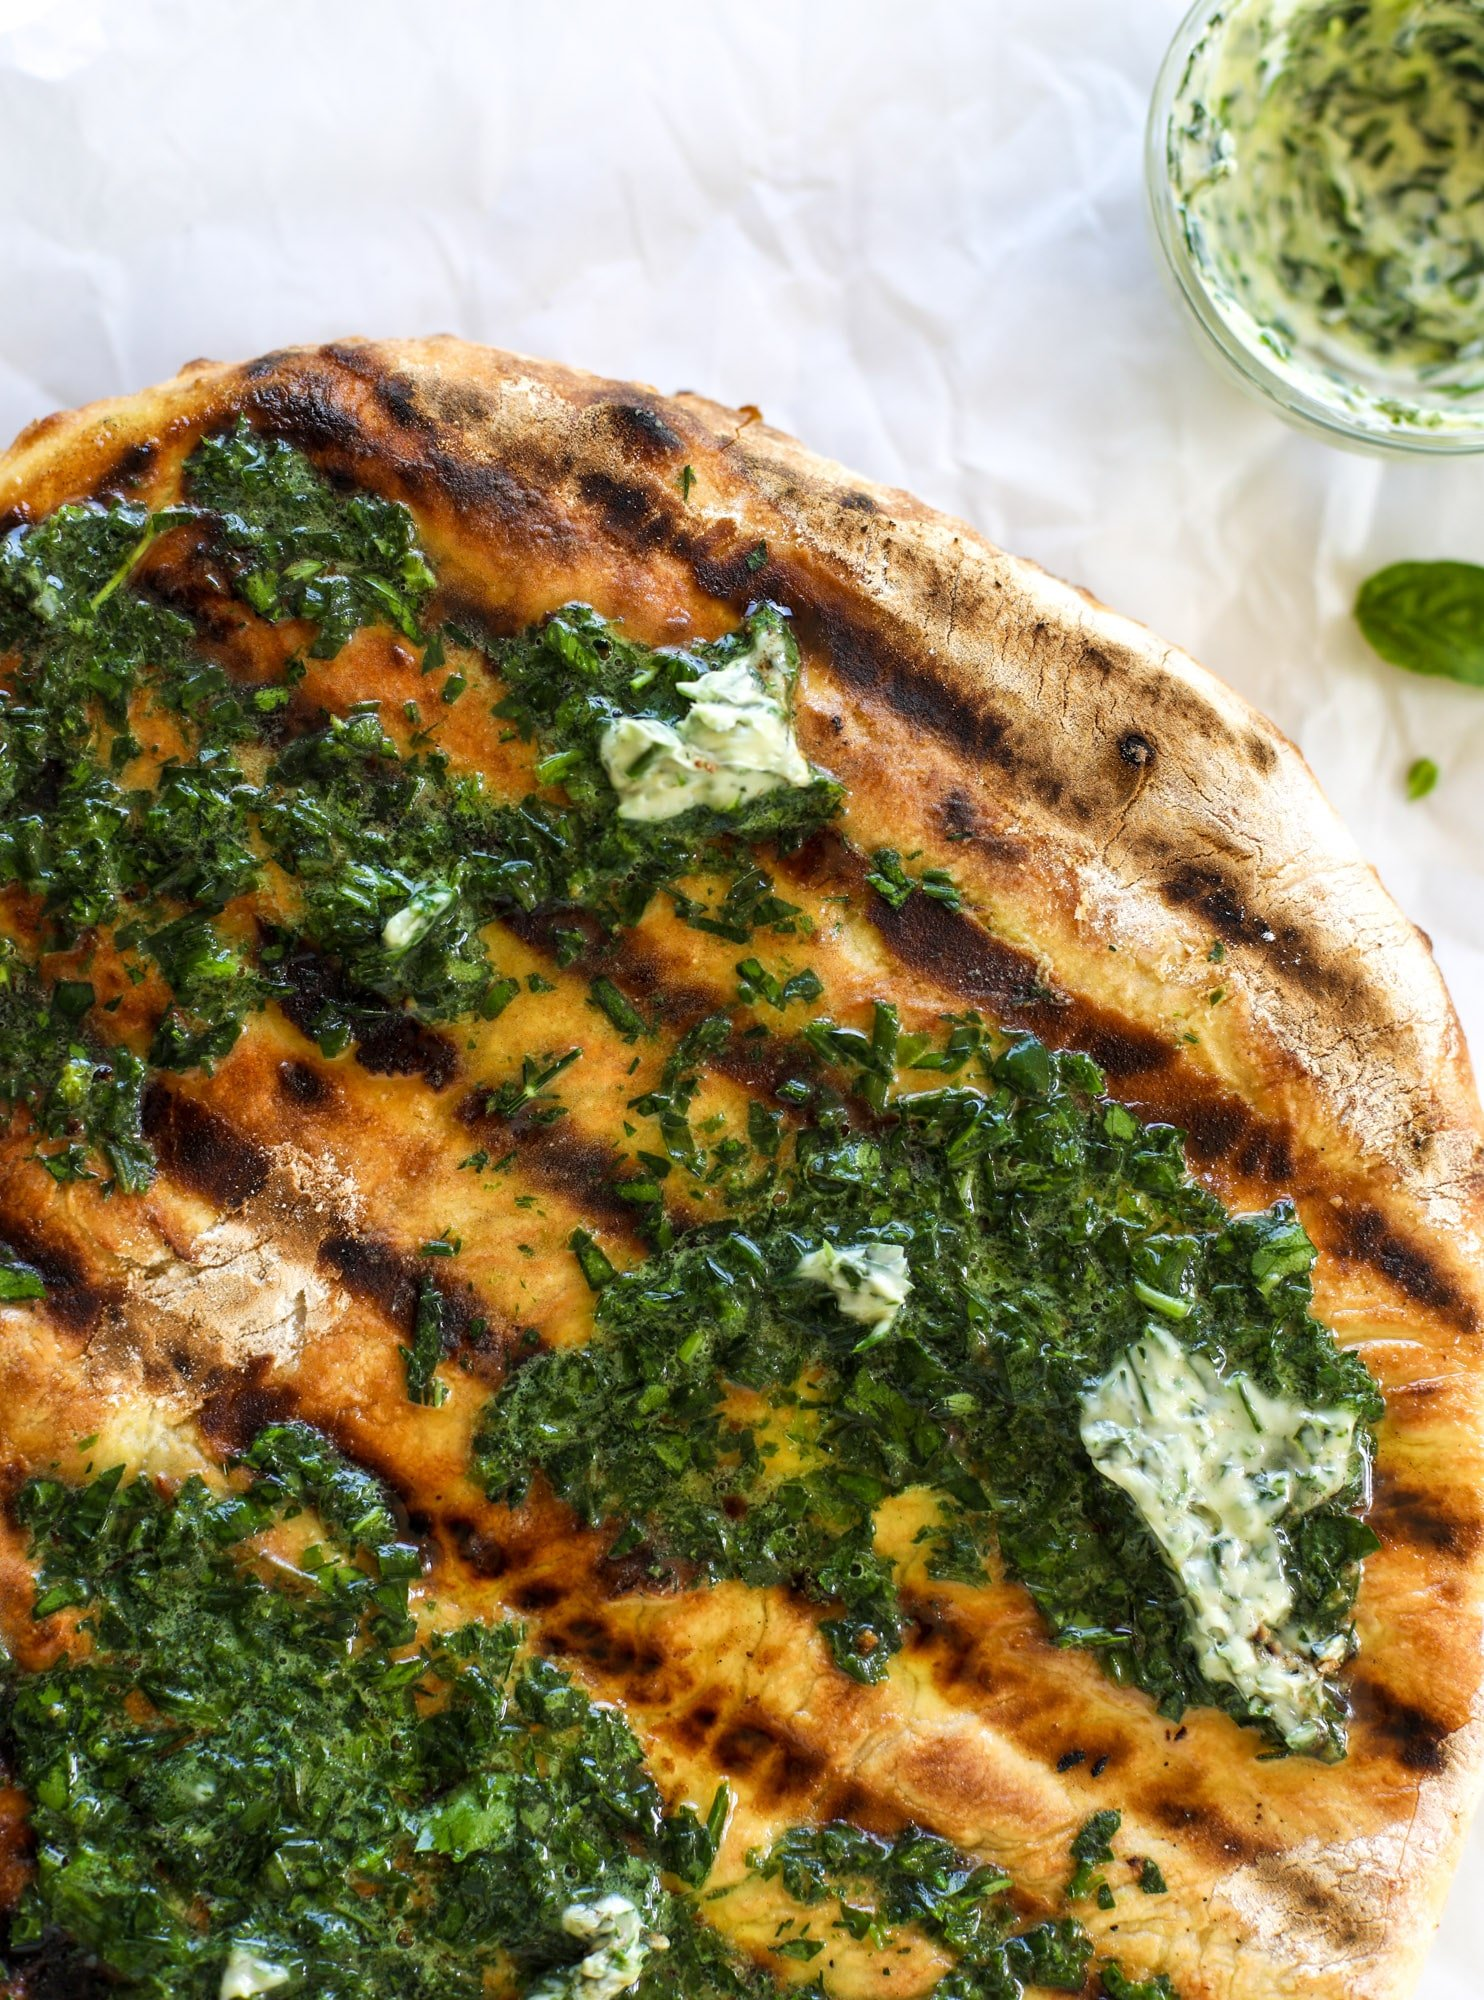 grilled pizza with garlic herb butter